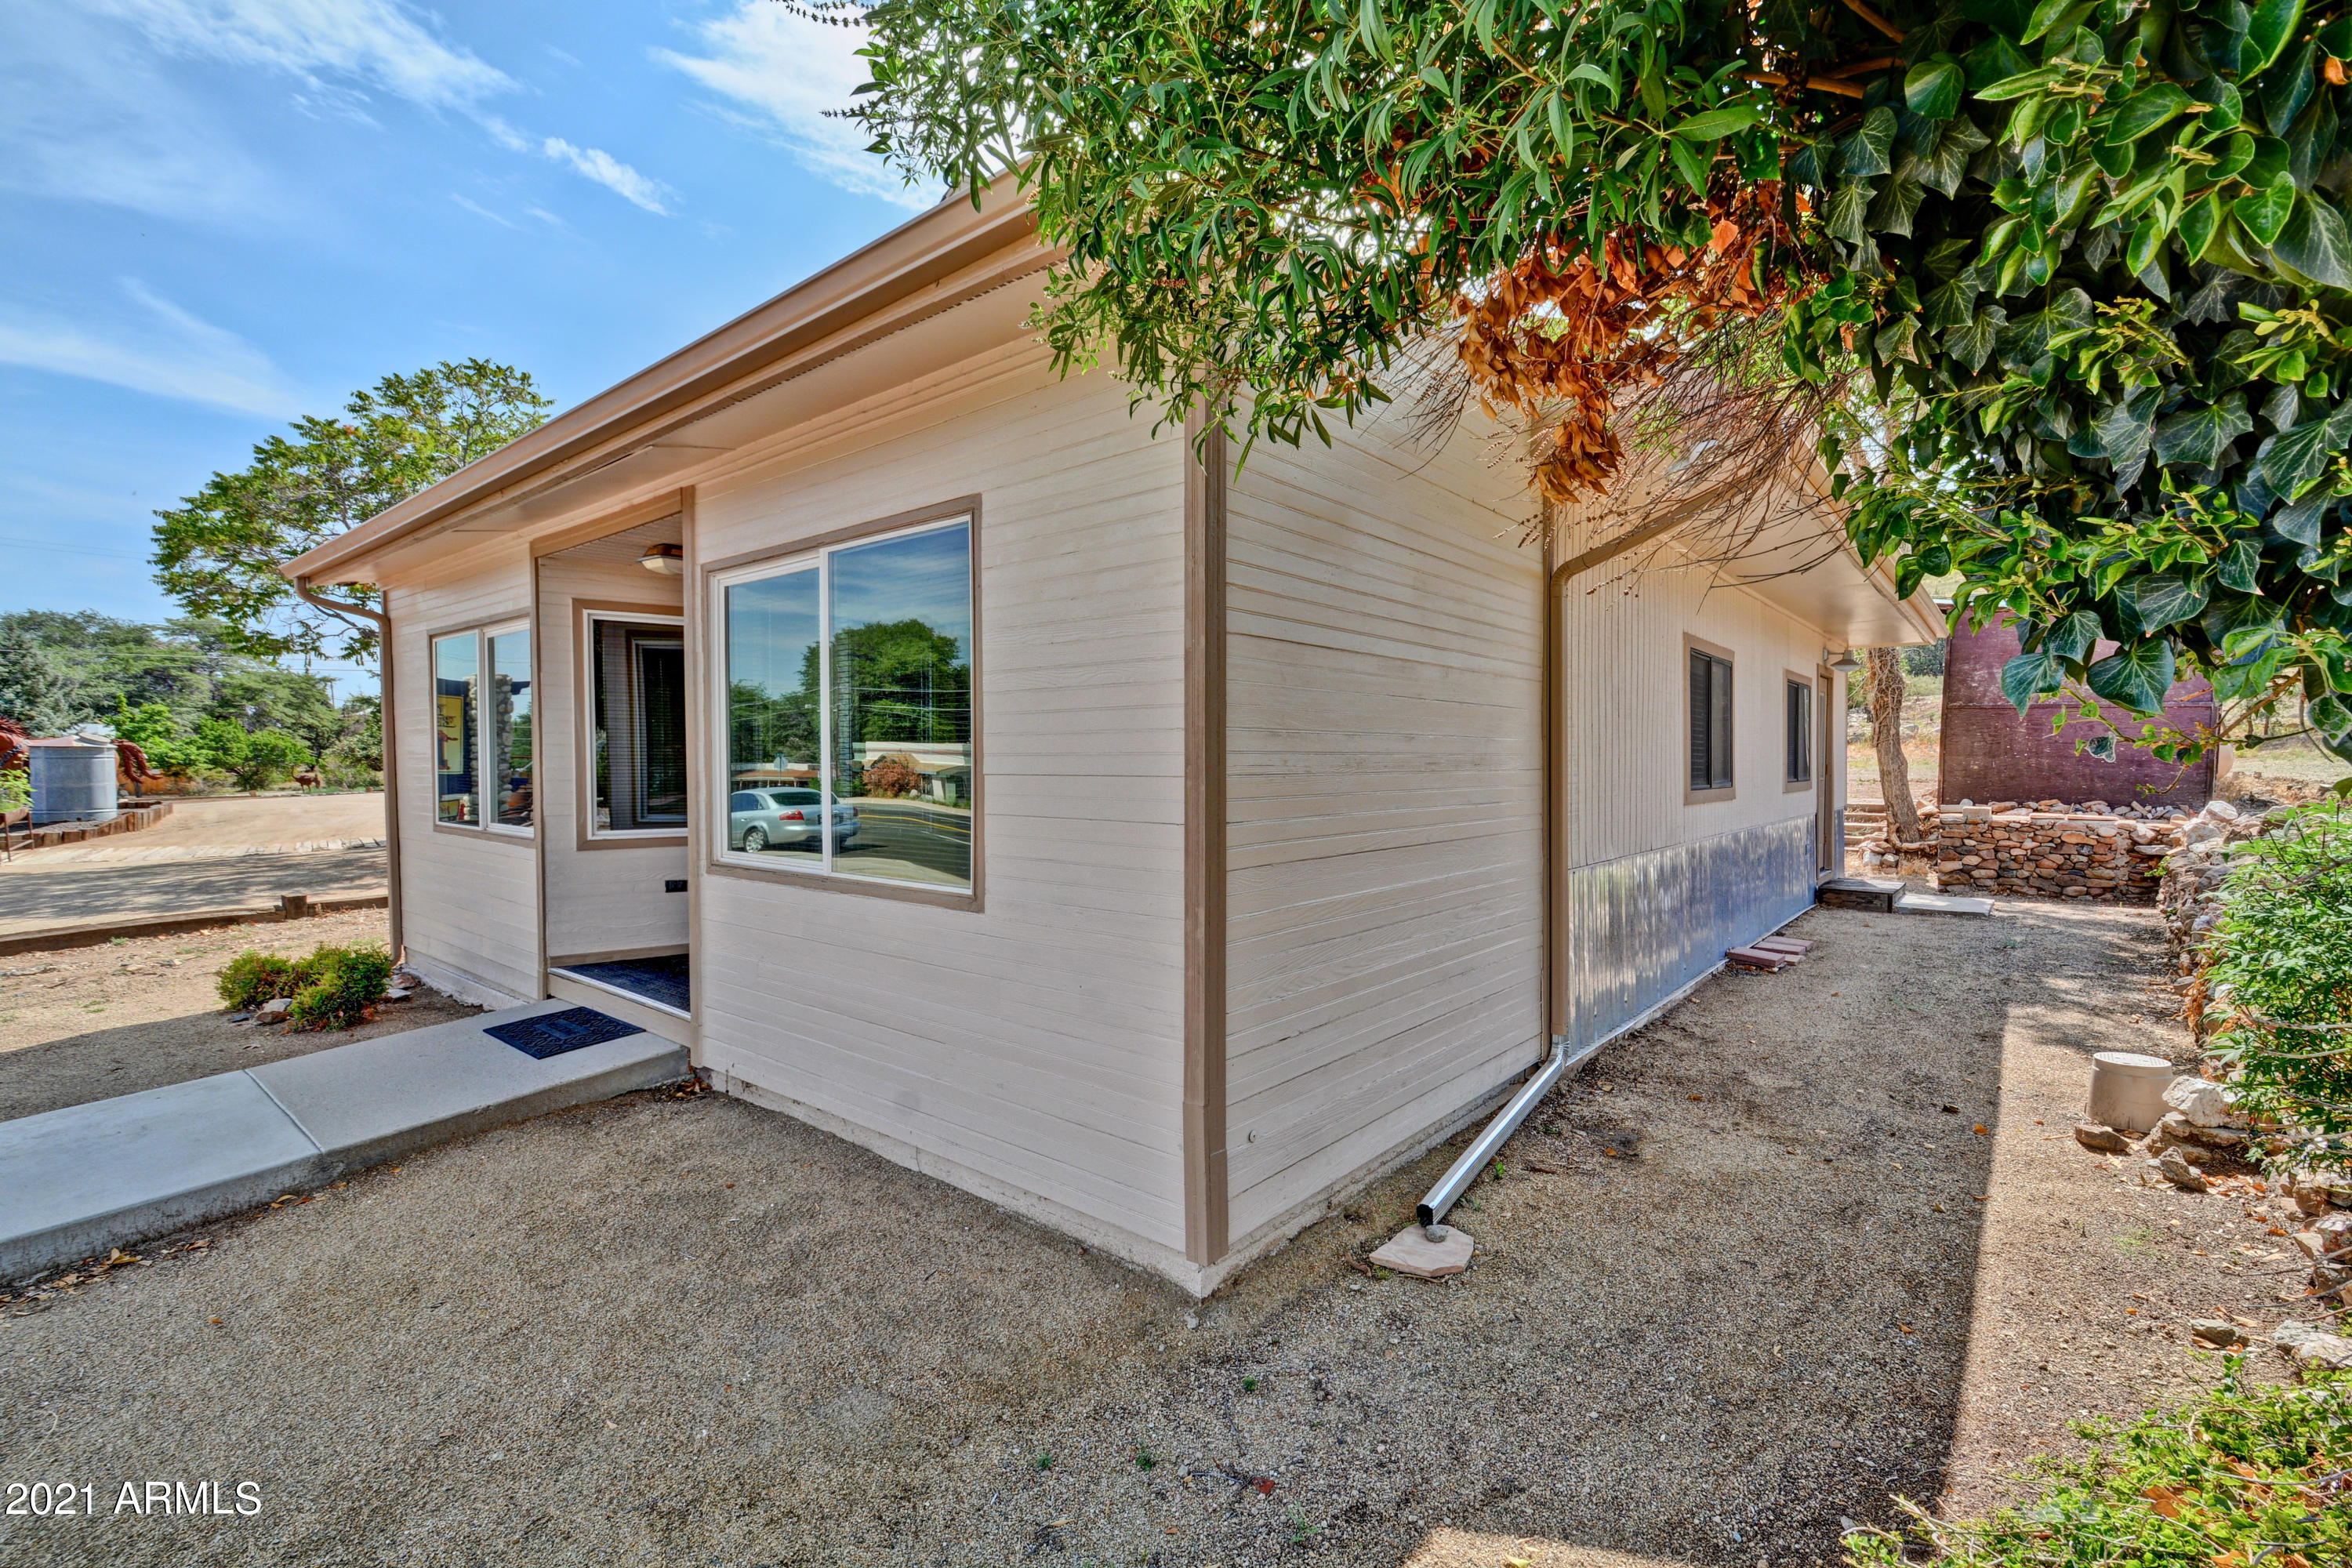 22763 STATE ROUTE 89 --, Yarnell, Arizona 85362, ,Comm/Industry Sale,For Rent,STATE ROUTE 89,6267999